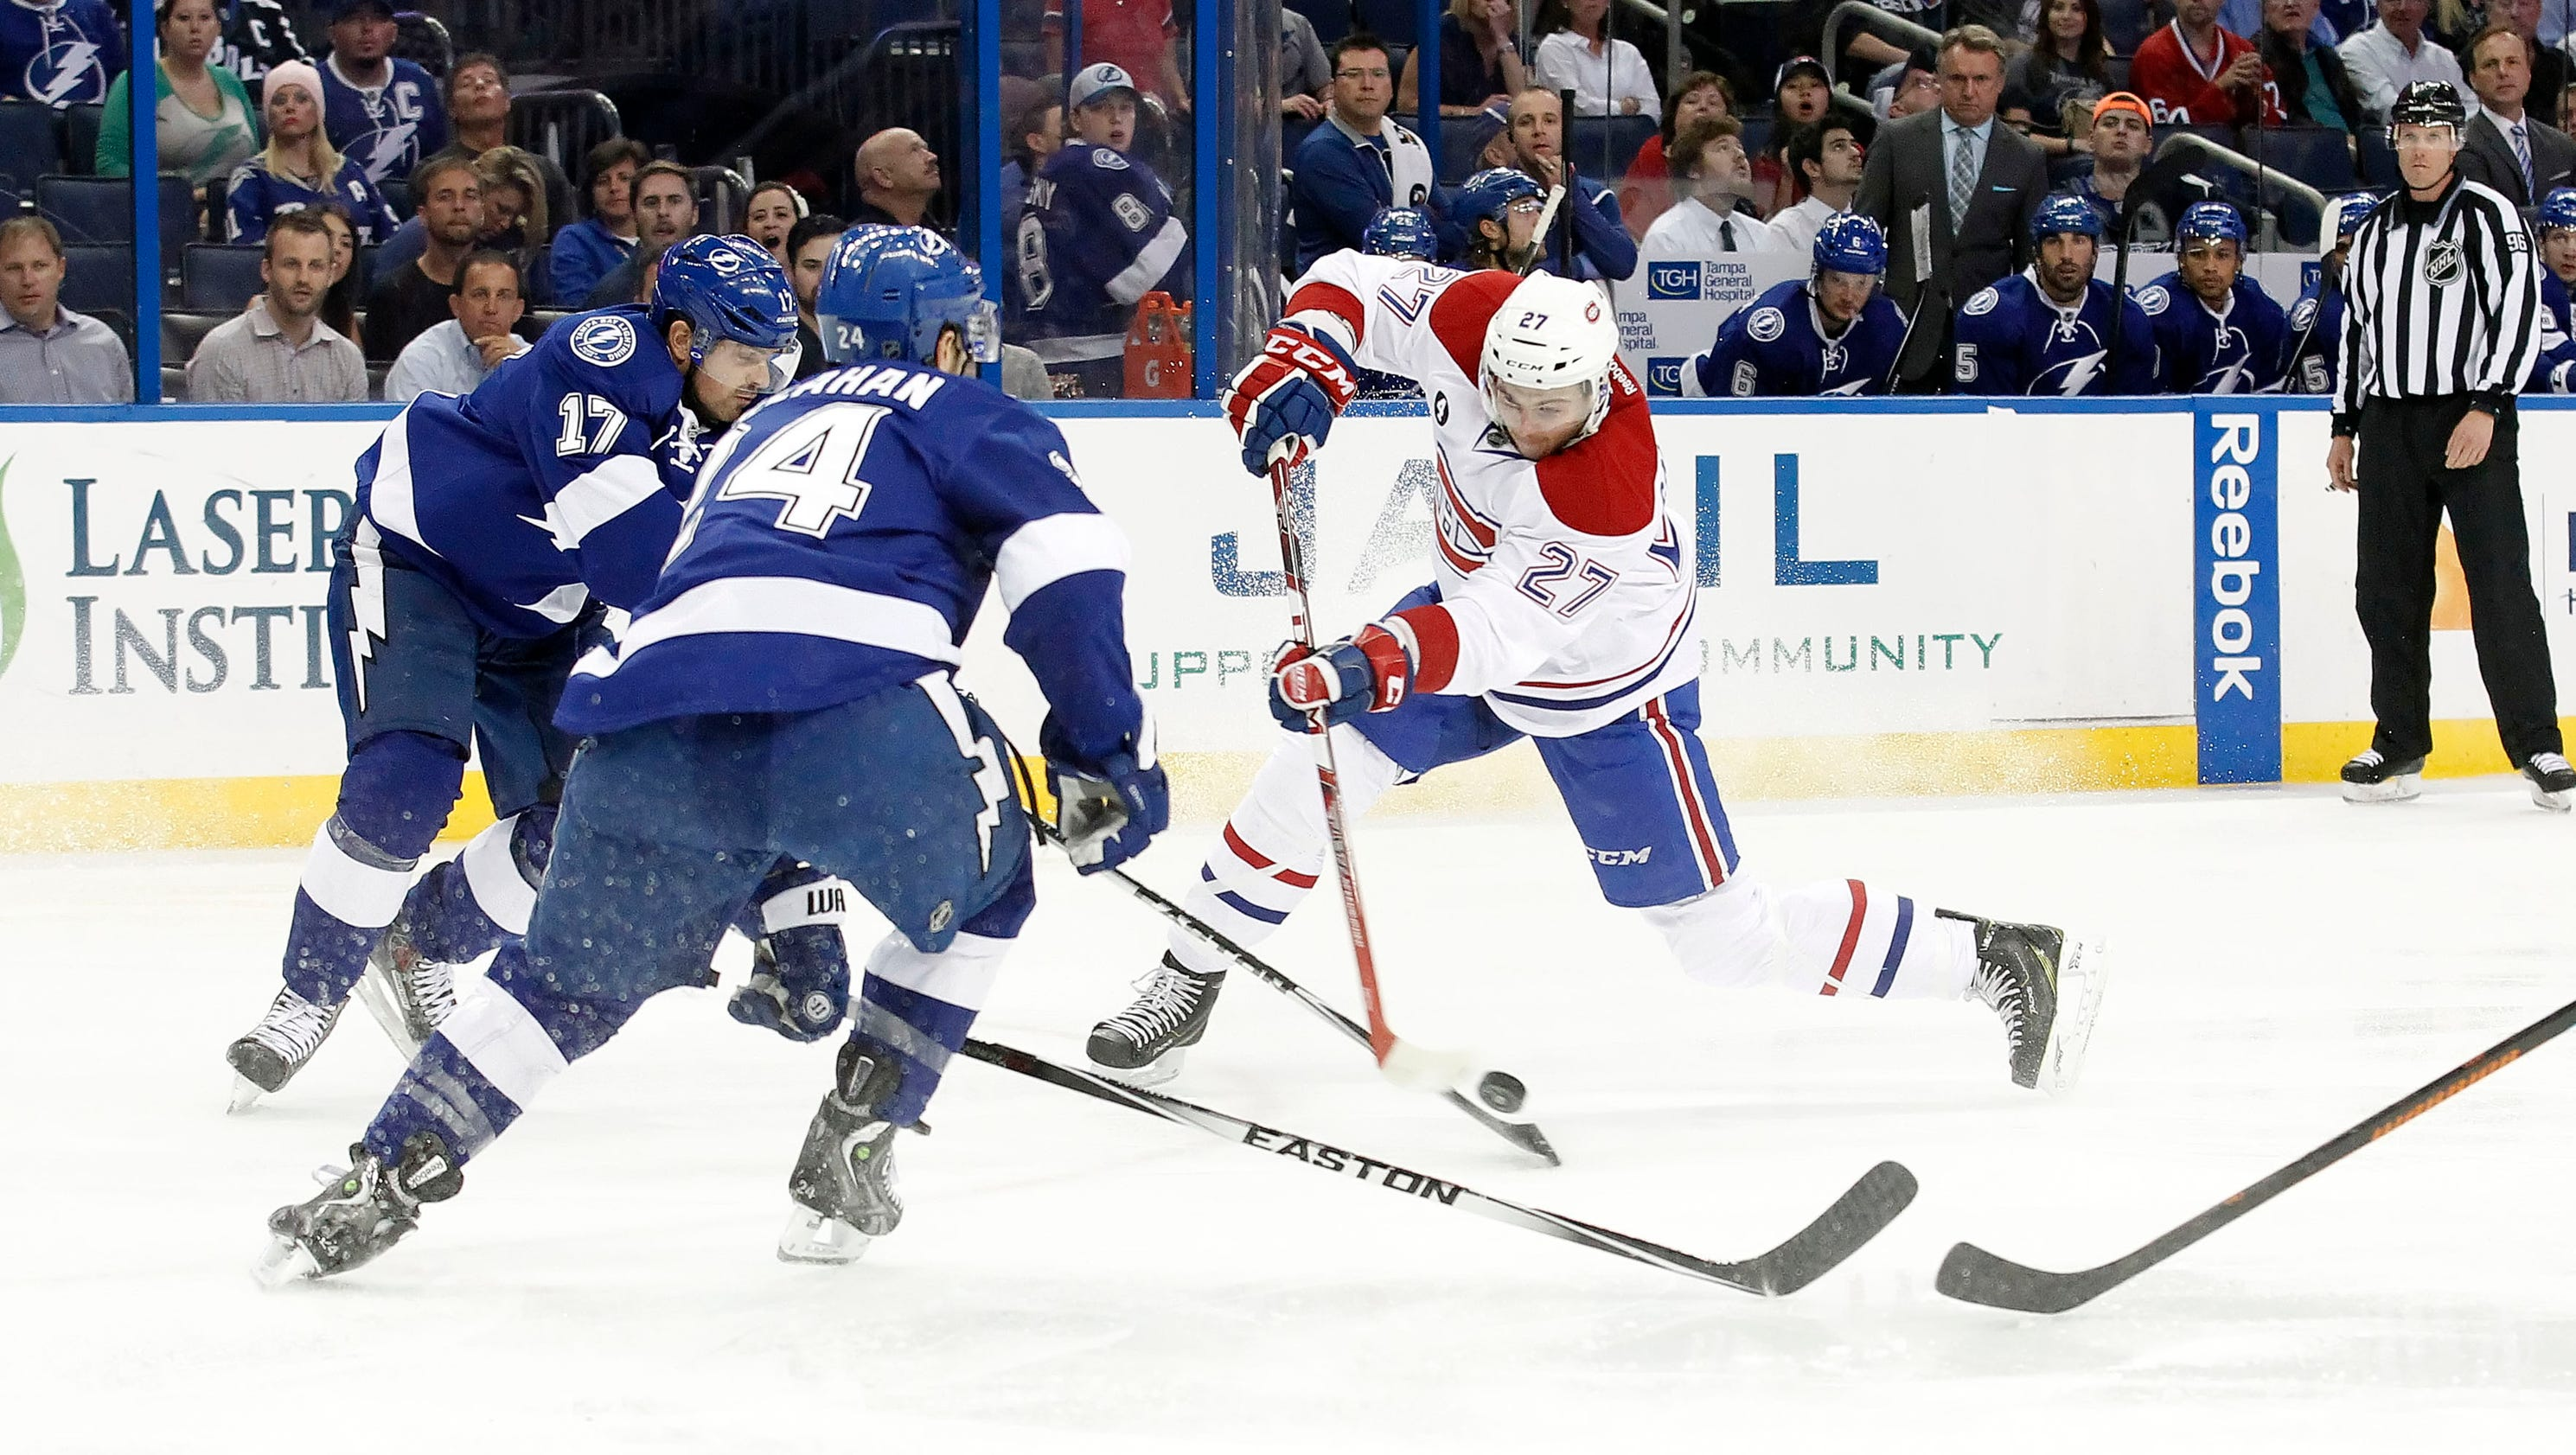 Stamkos Scores 2 Goals Lightning Beat Canadiens 4 2